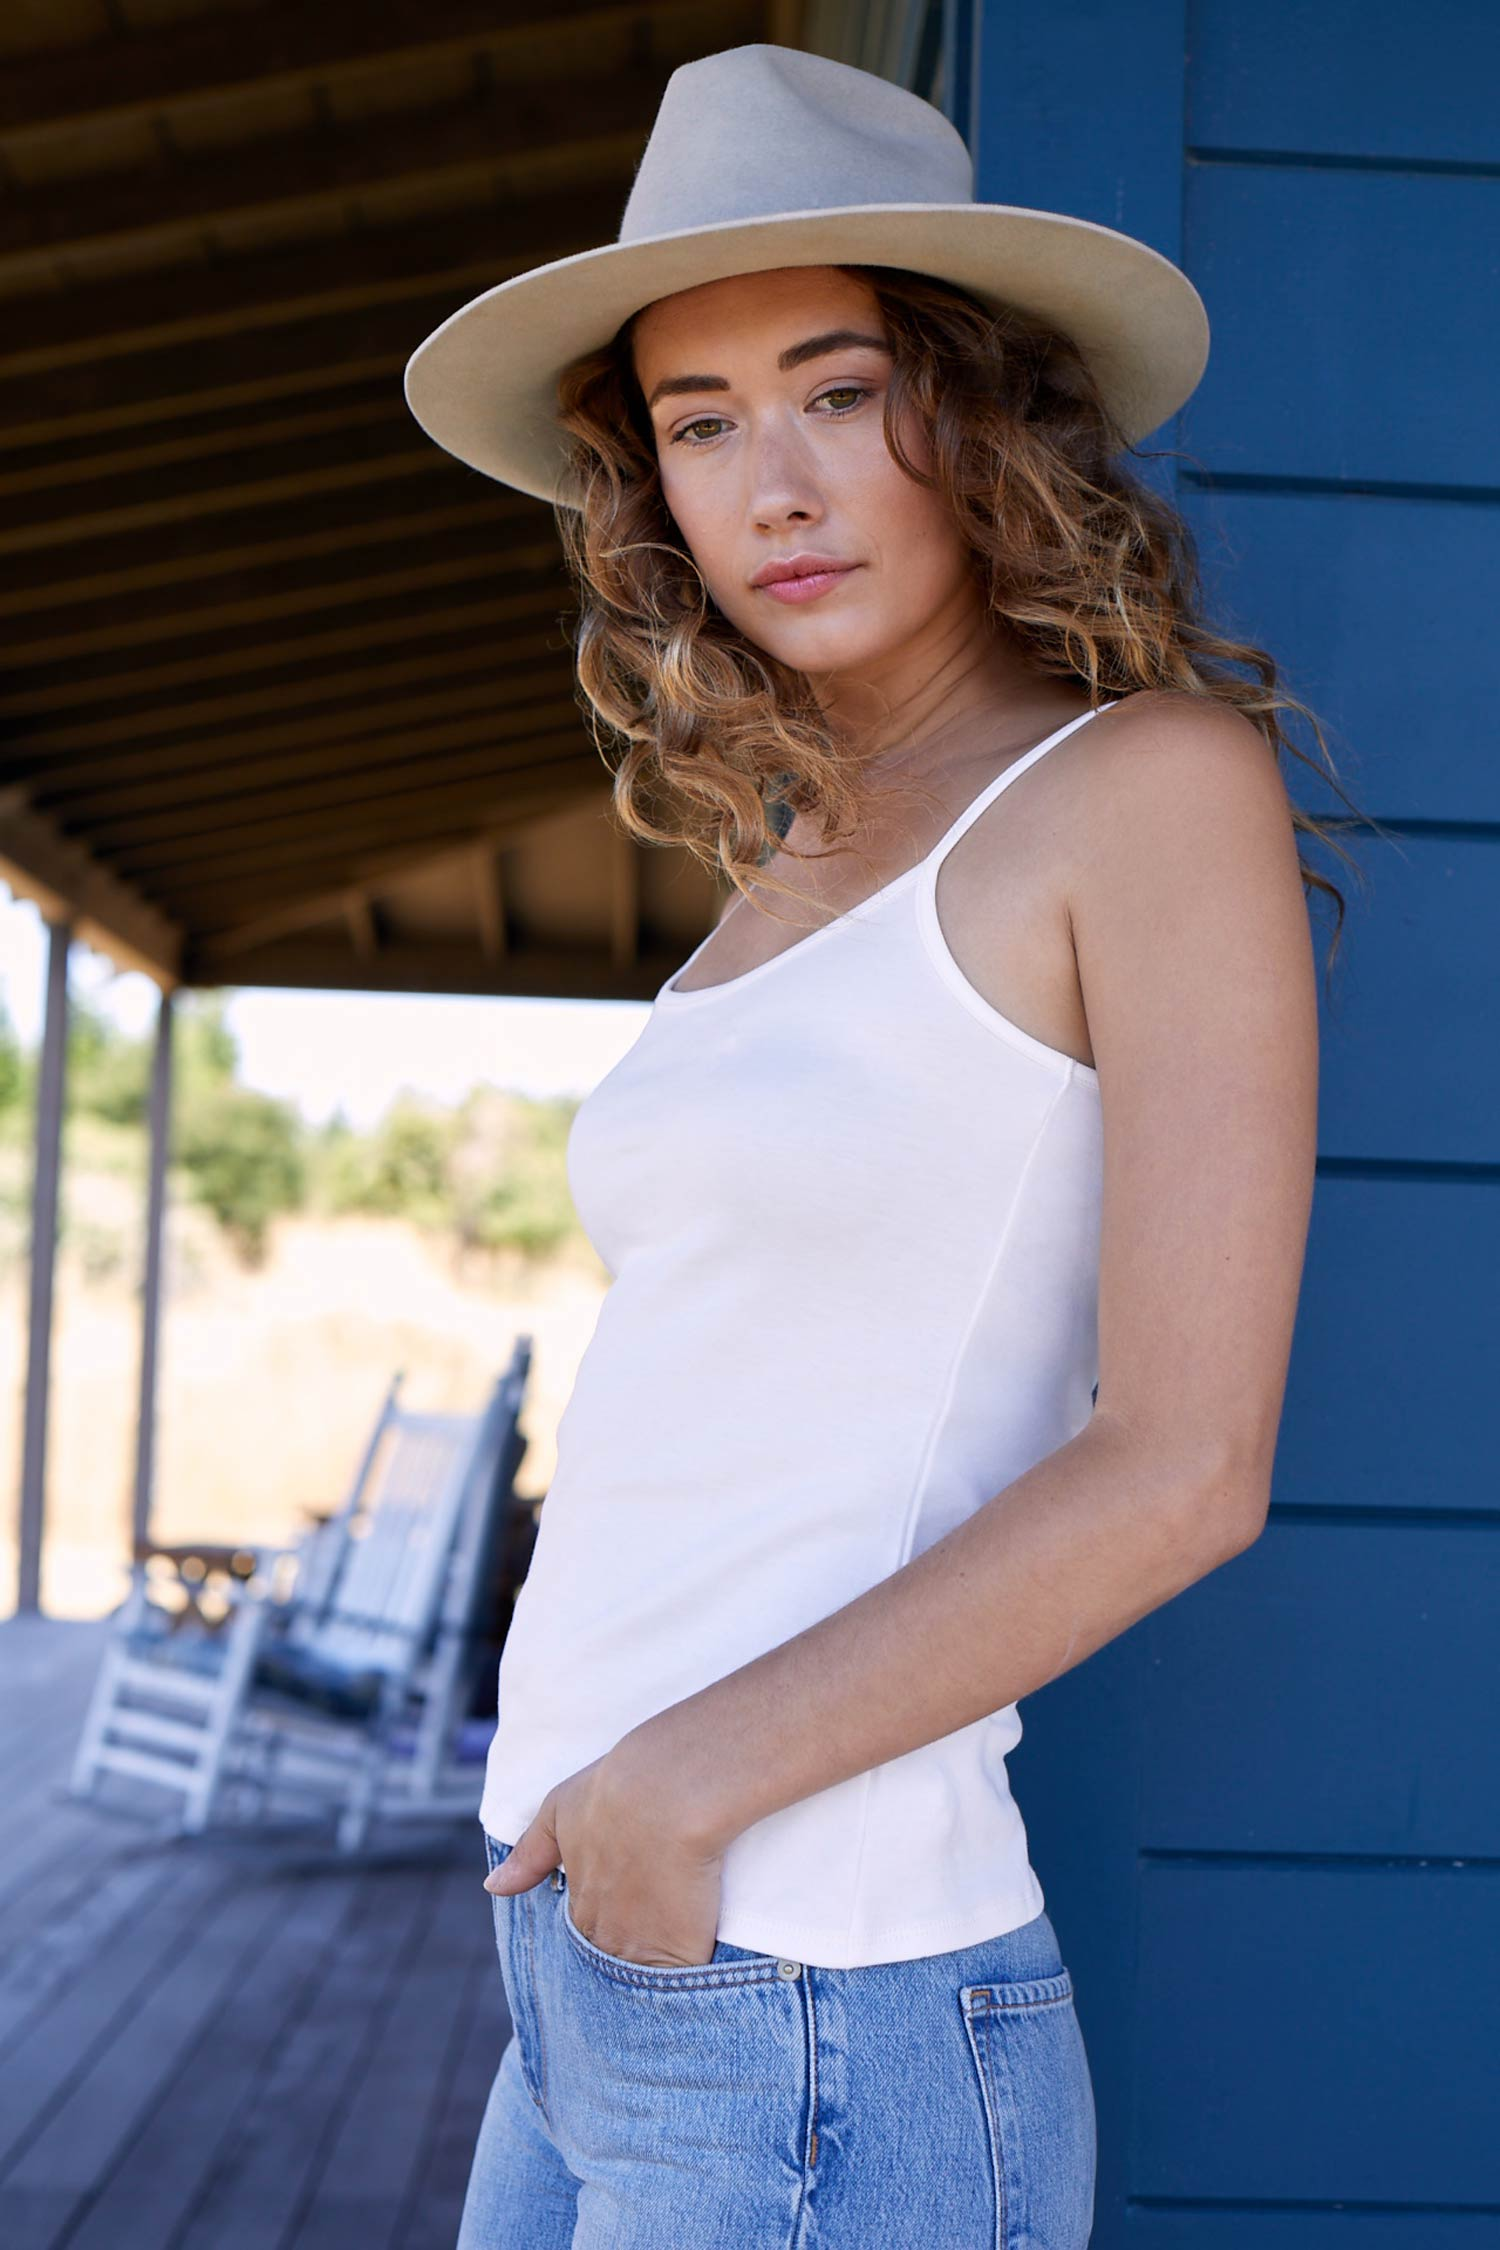 Womens Tank Top Camisole White | Organic Cotton Clothing Essentials